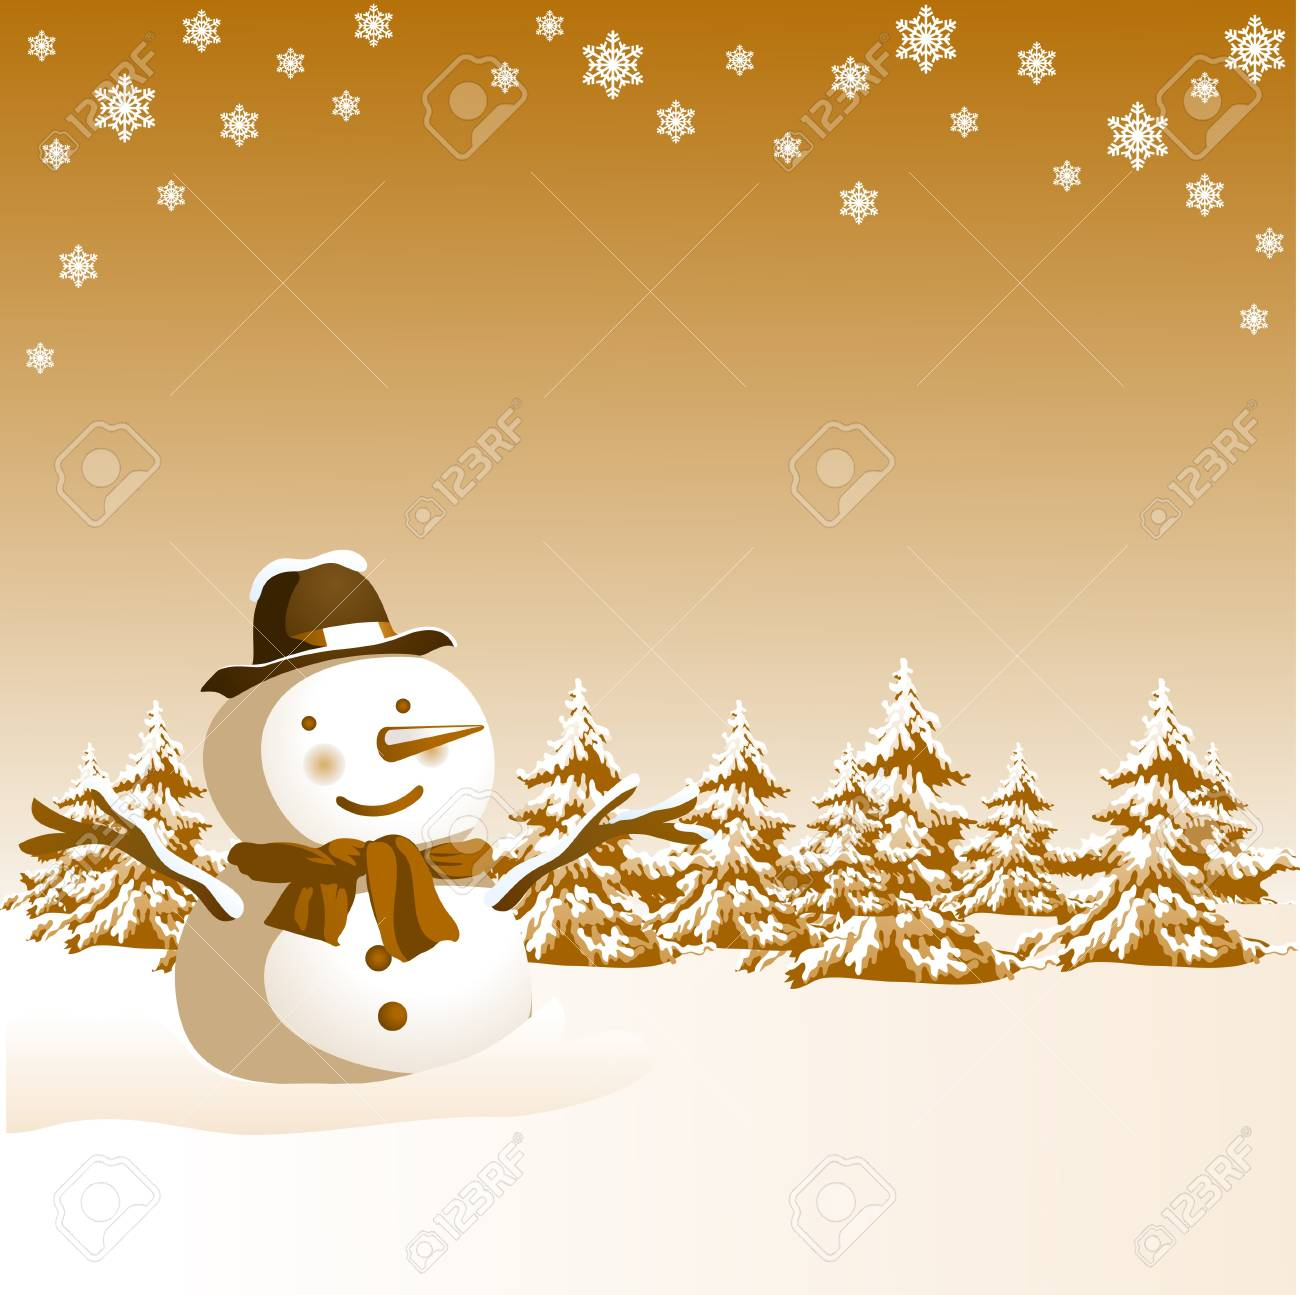 Christmas design with snowman Stock Vector - 7884177